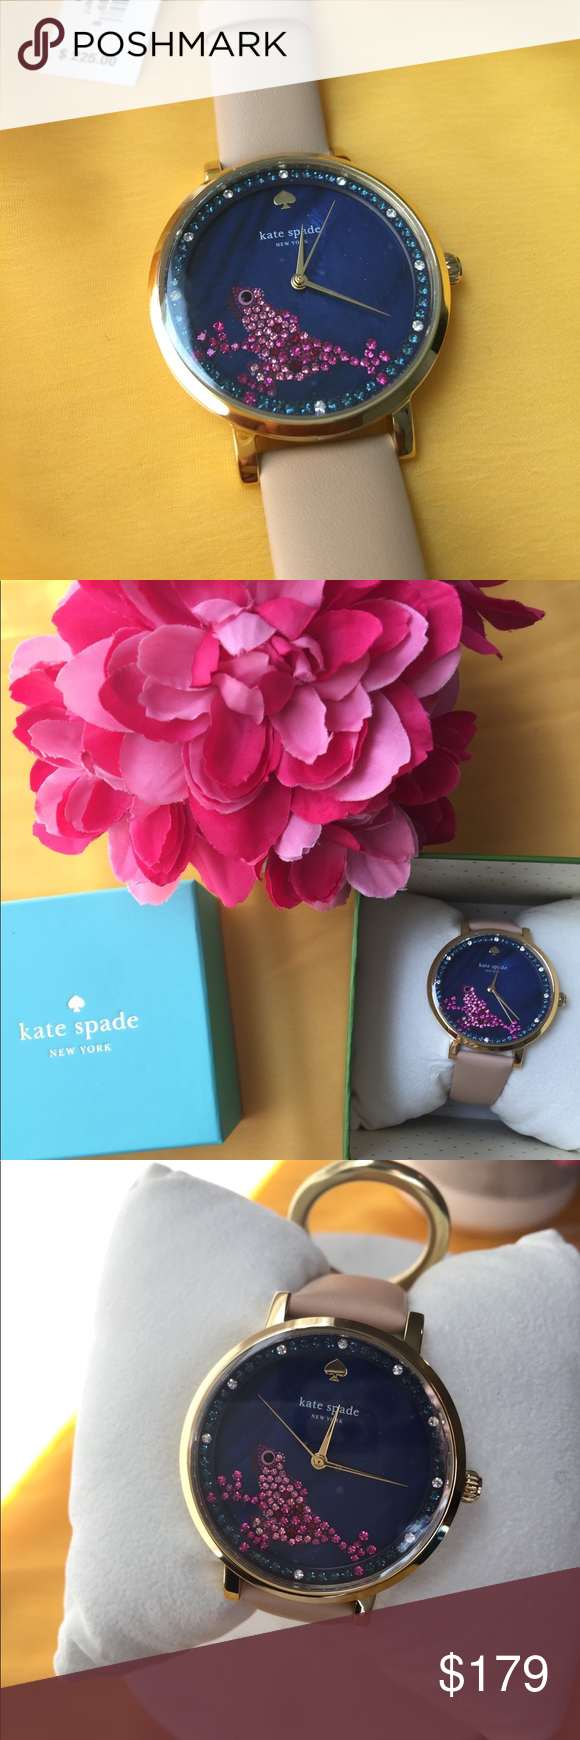 Kate Spade pink crystal watch with leather strap. Kate ...